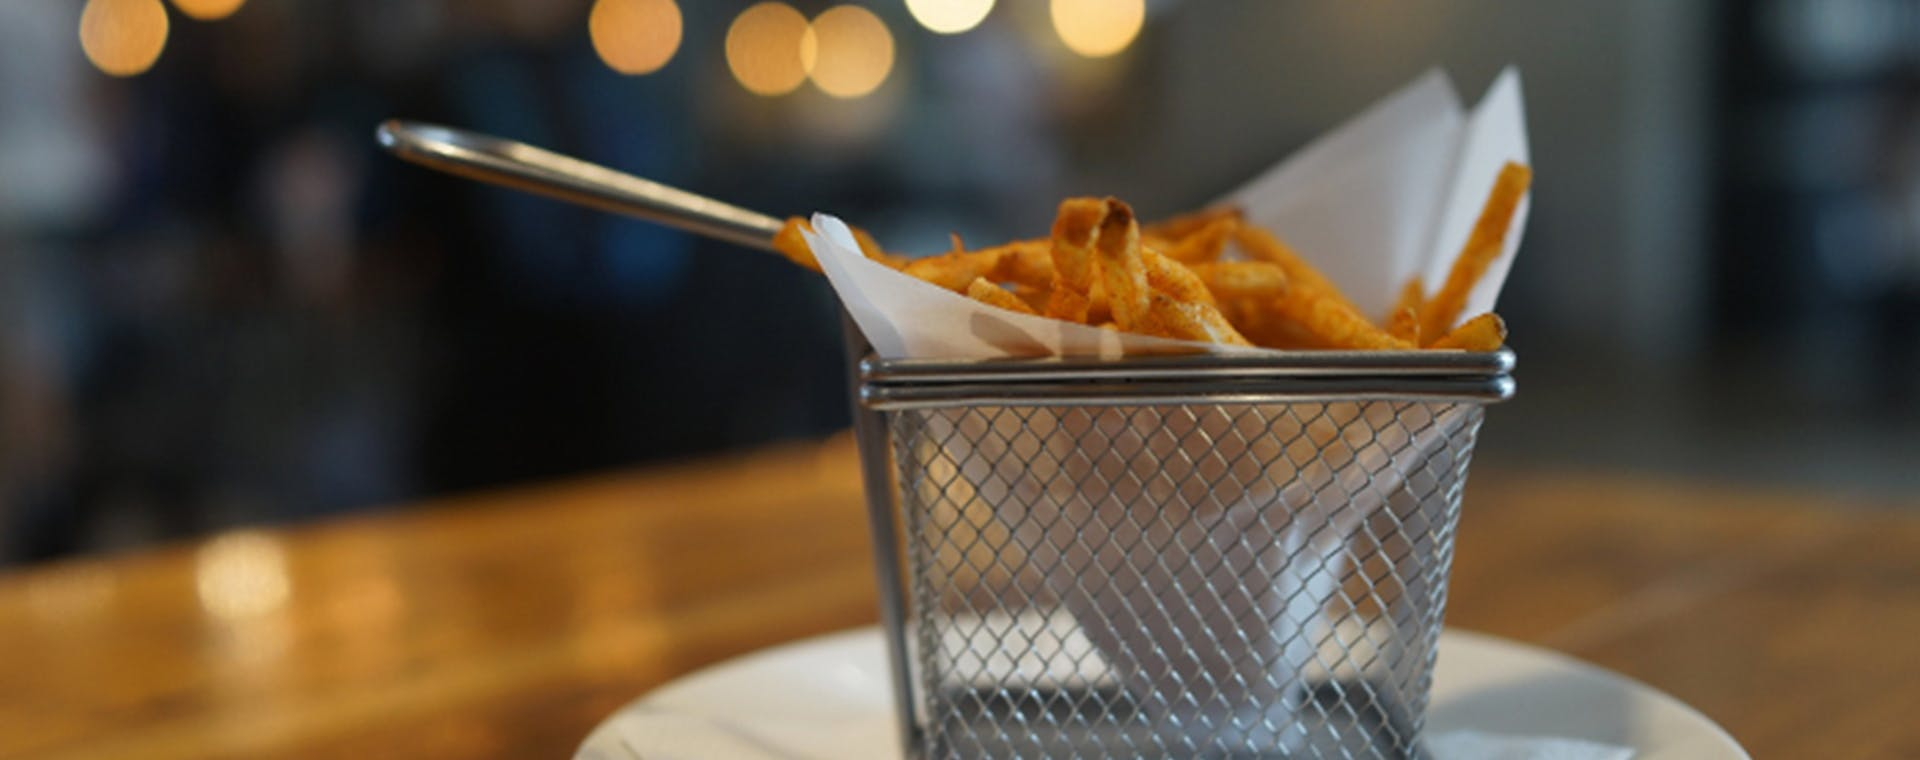 Chili Lime Butter French Fries